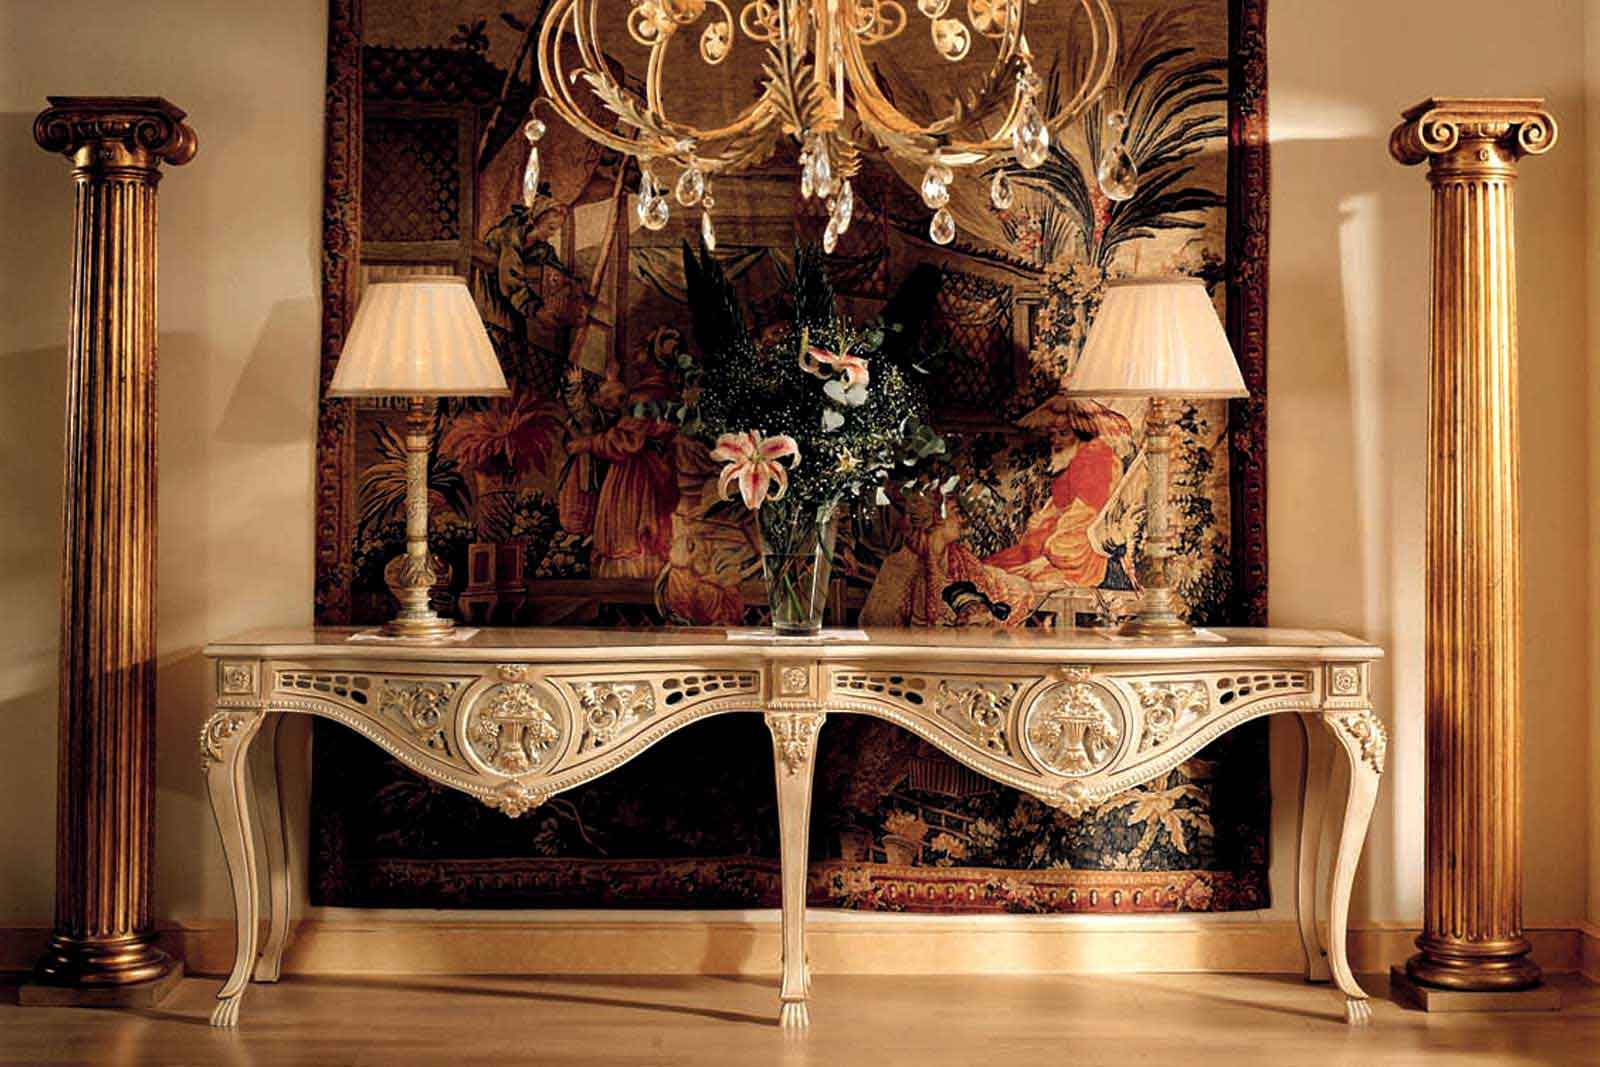 luxury furniture or2200 - double console mod.24073/9 of 250x55x81 carving, finished asta and HQULSBG